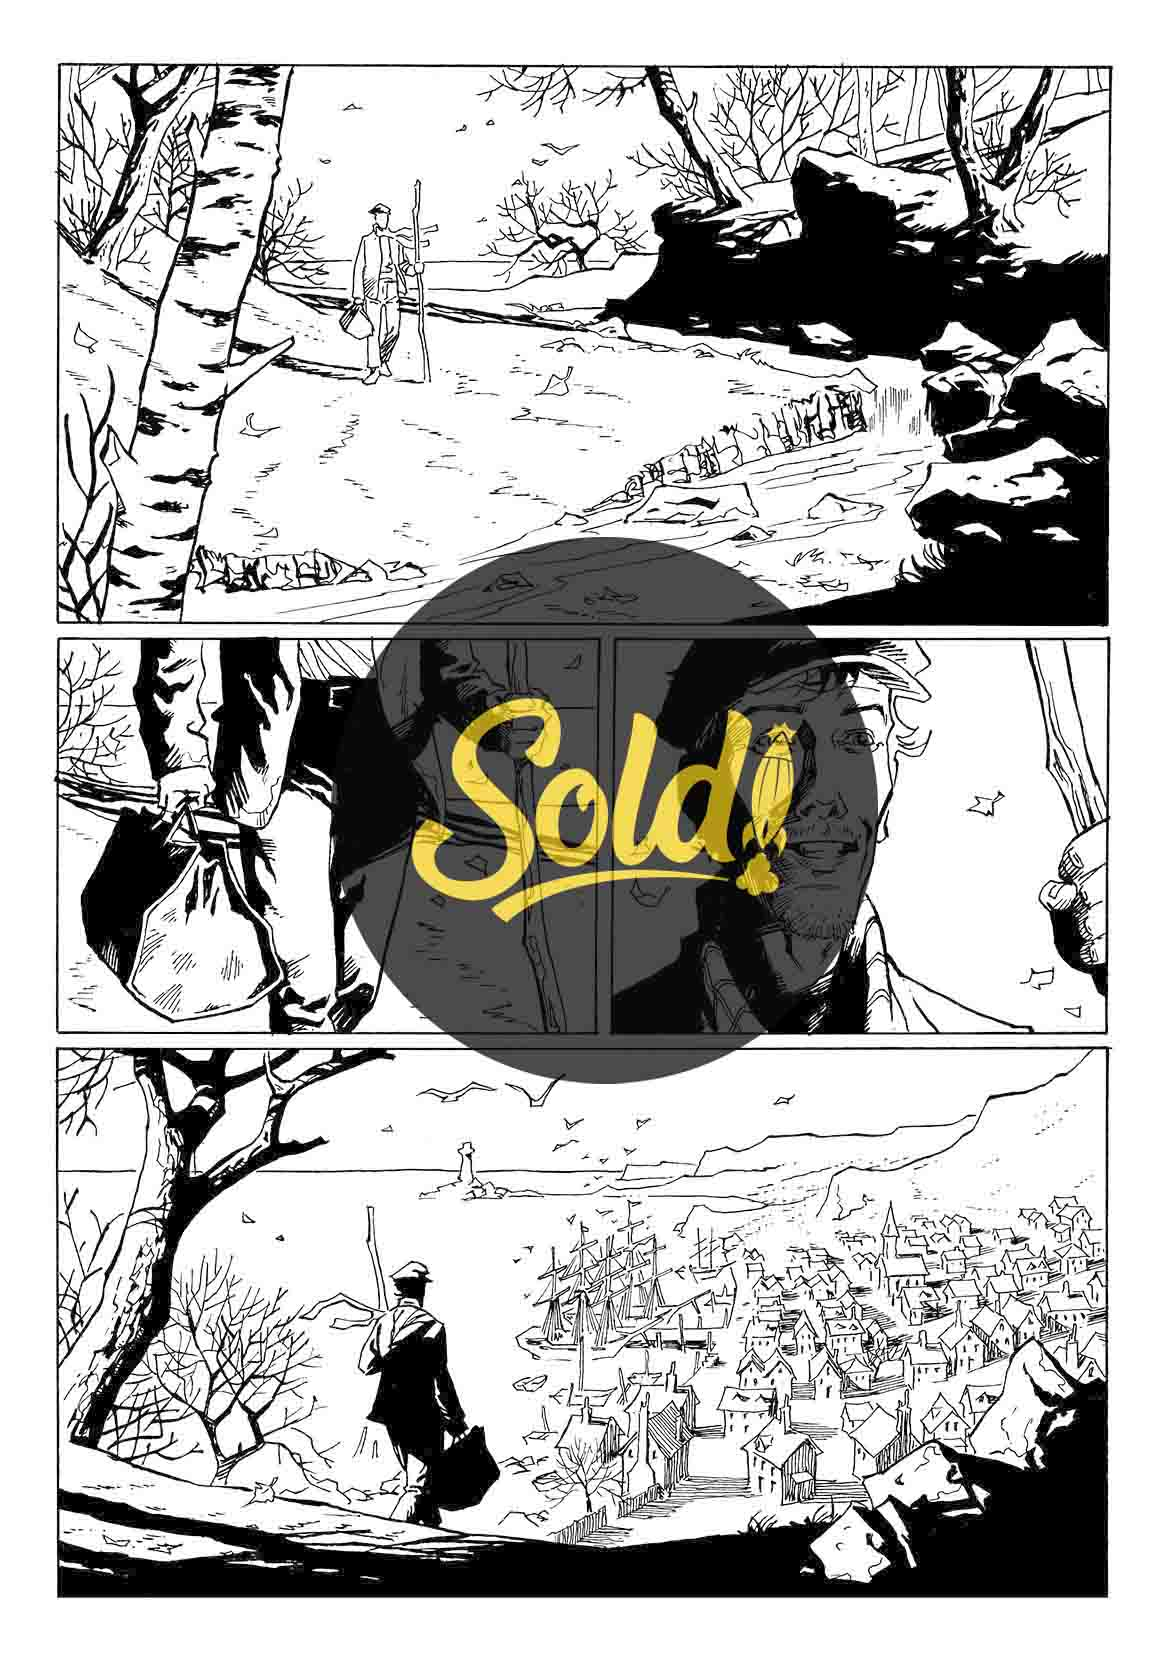 page 4 - sold